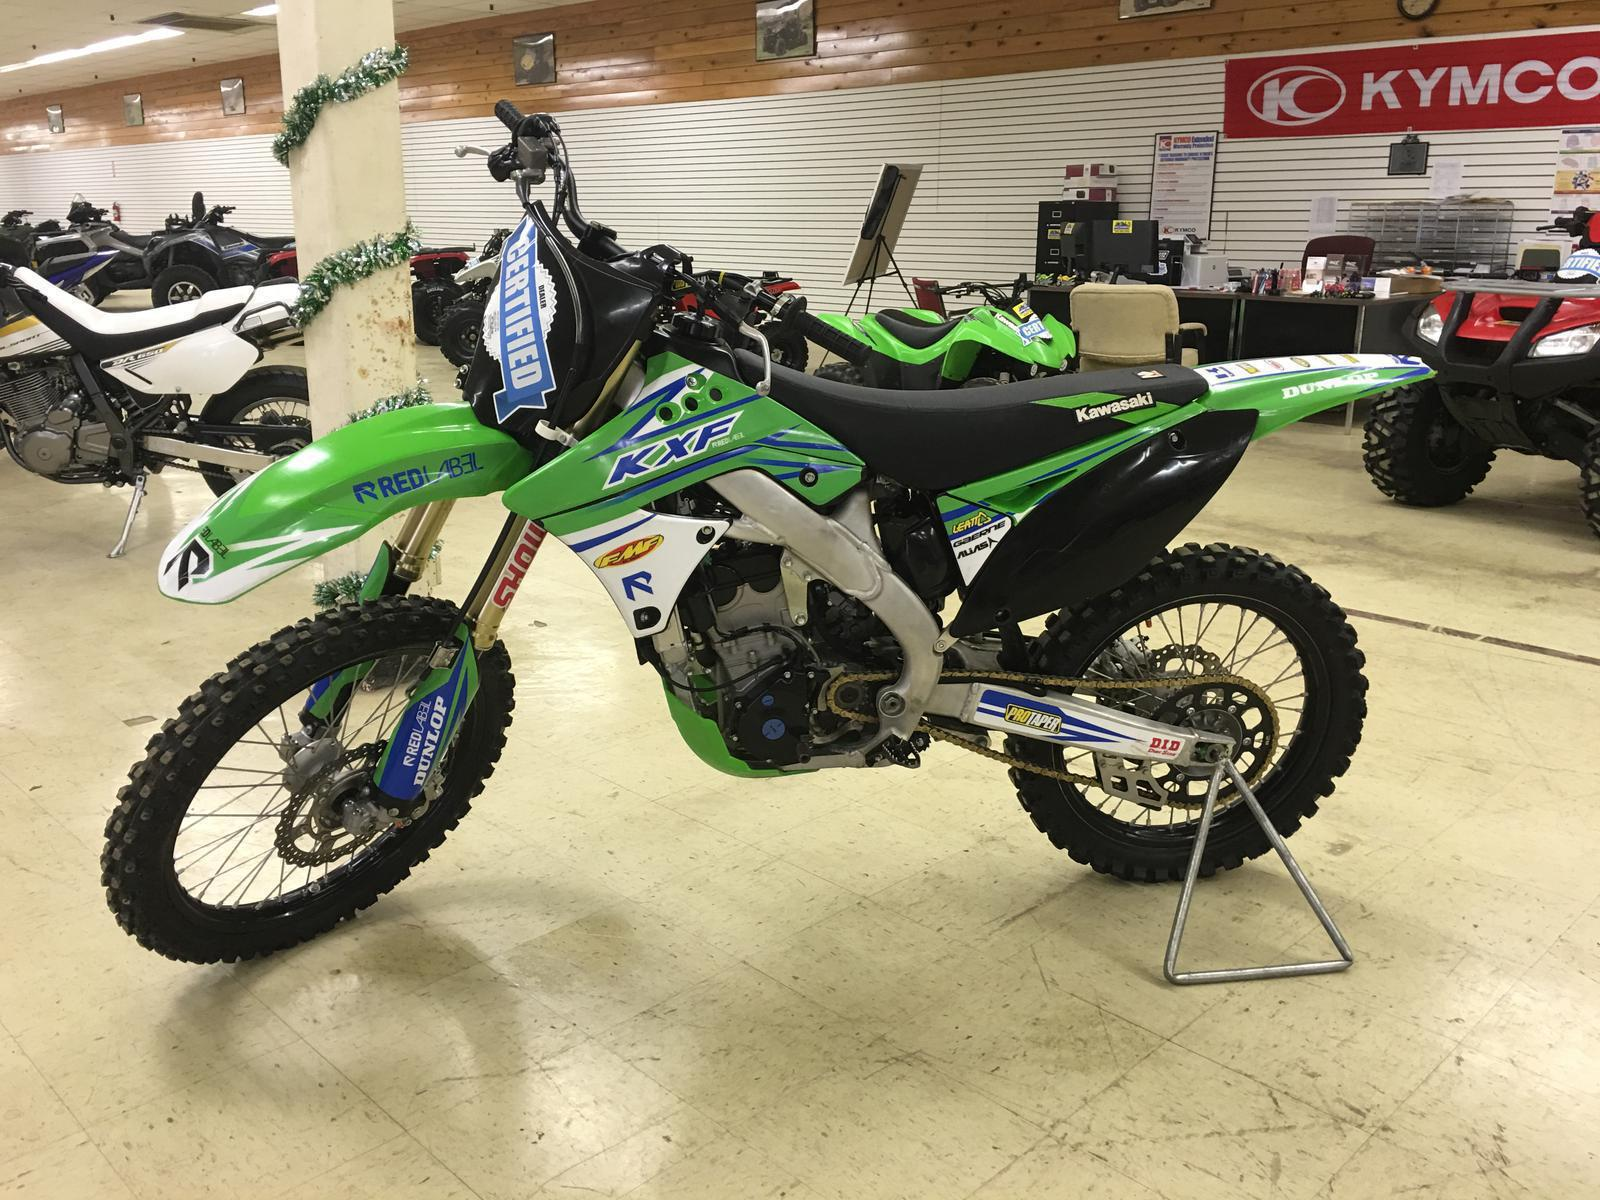 IMG_2418?v=1488898975873 2012 kawasaki kx™ 250f for sale in bluefield, wv planet  at n-0.co